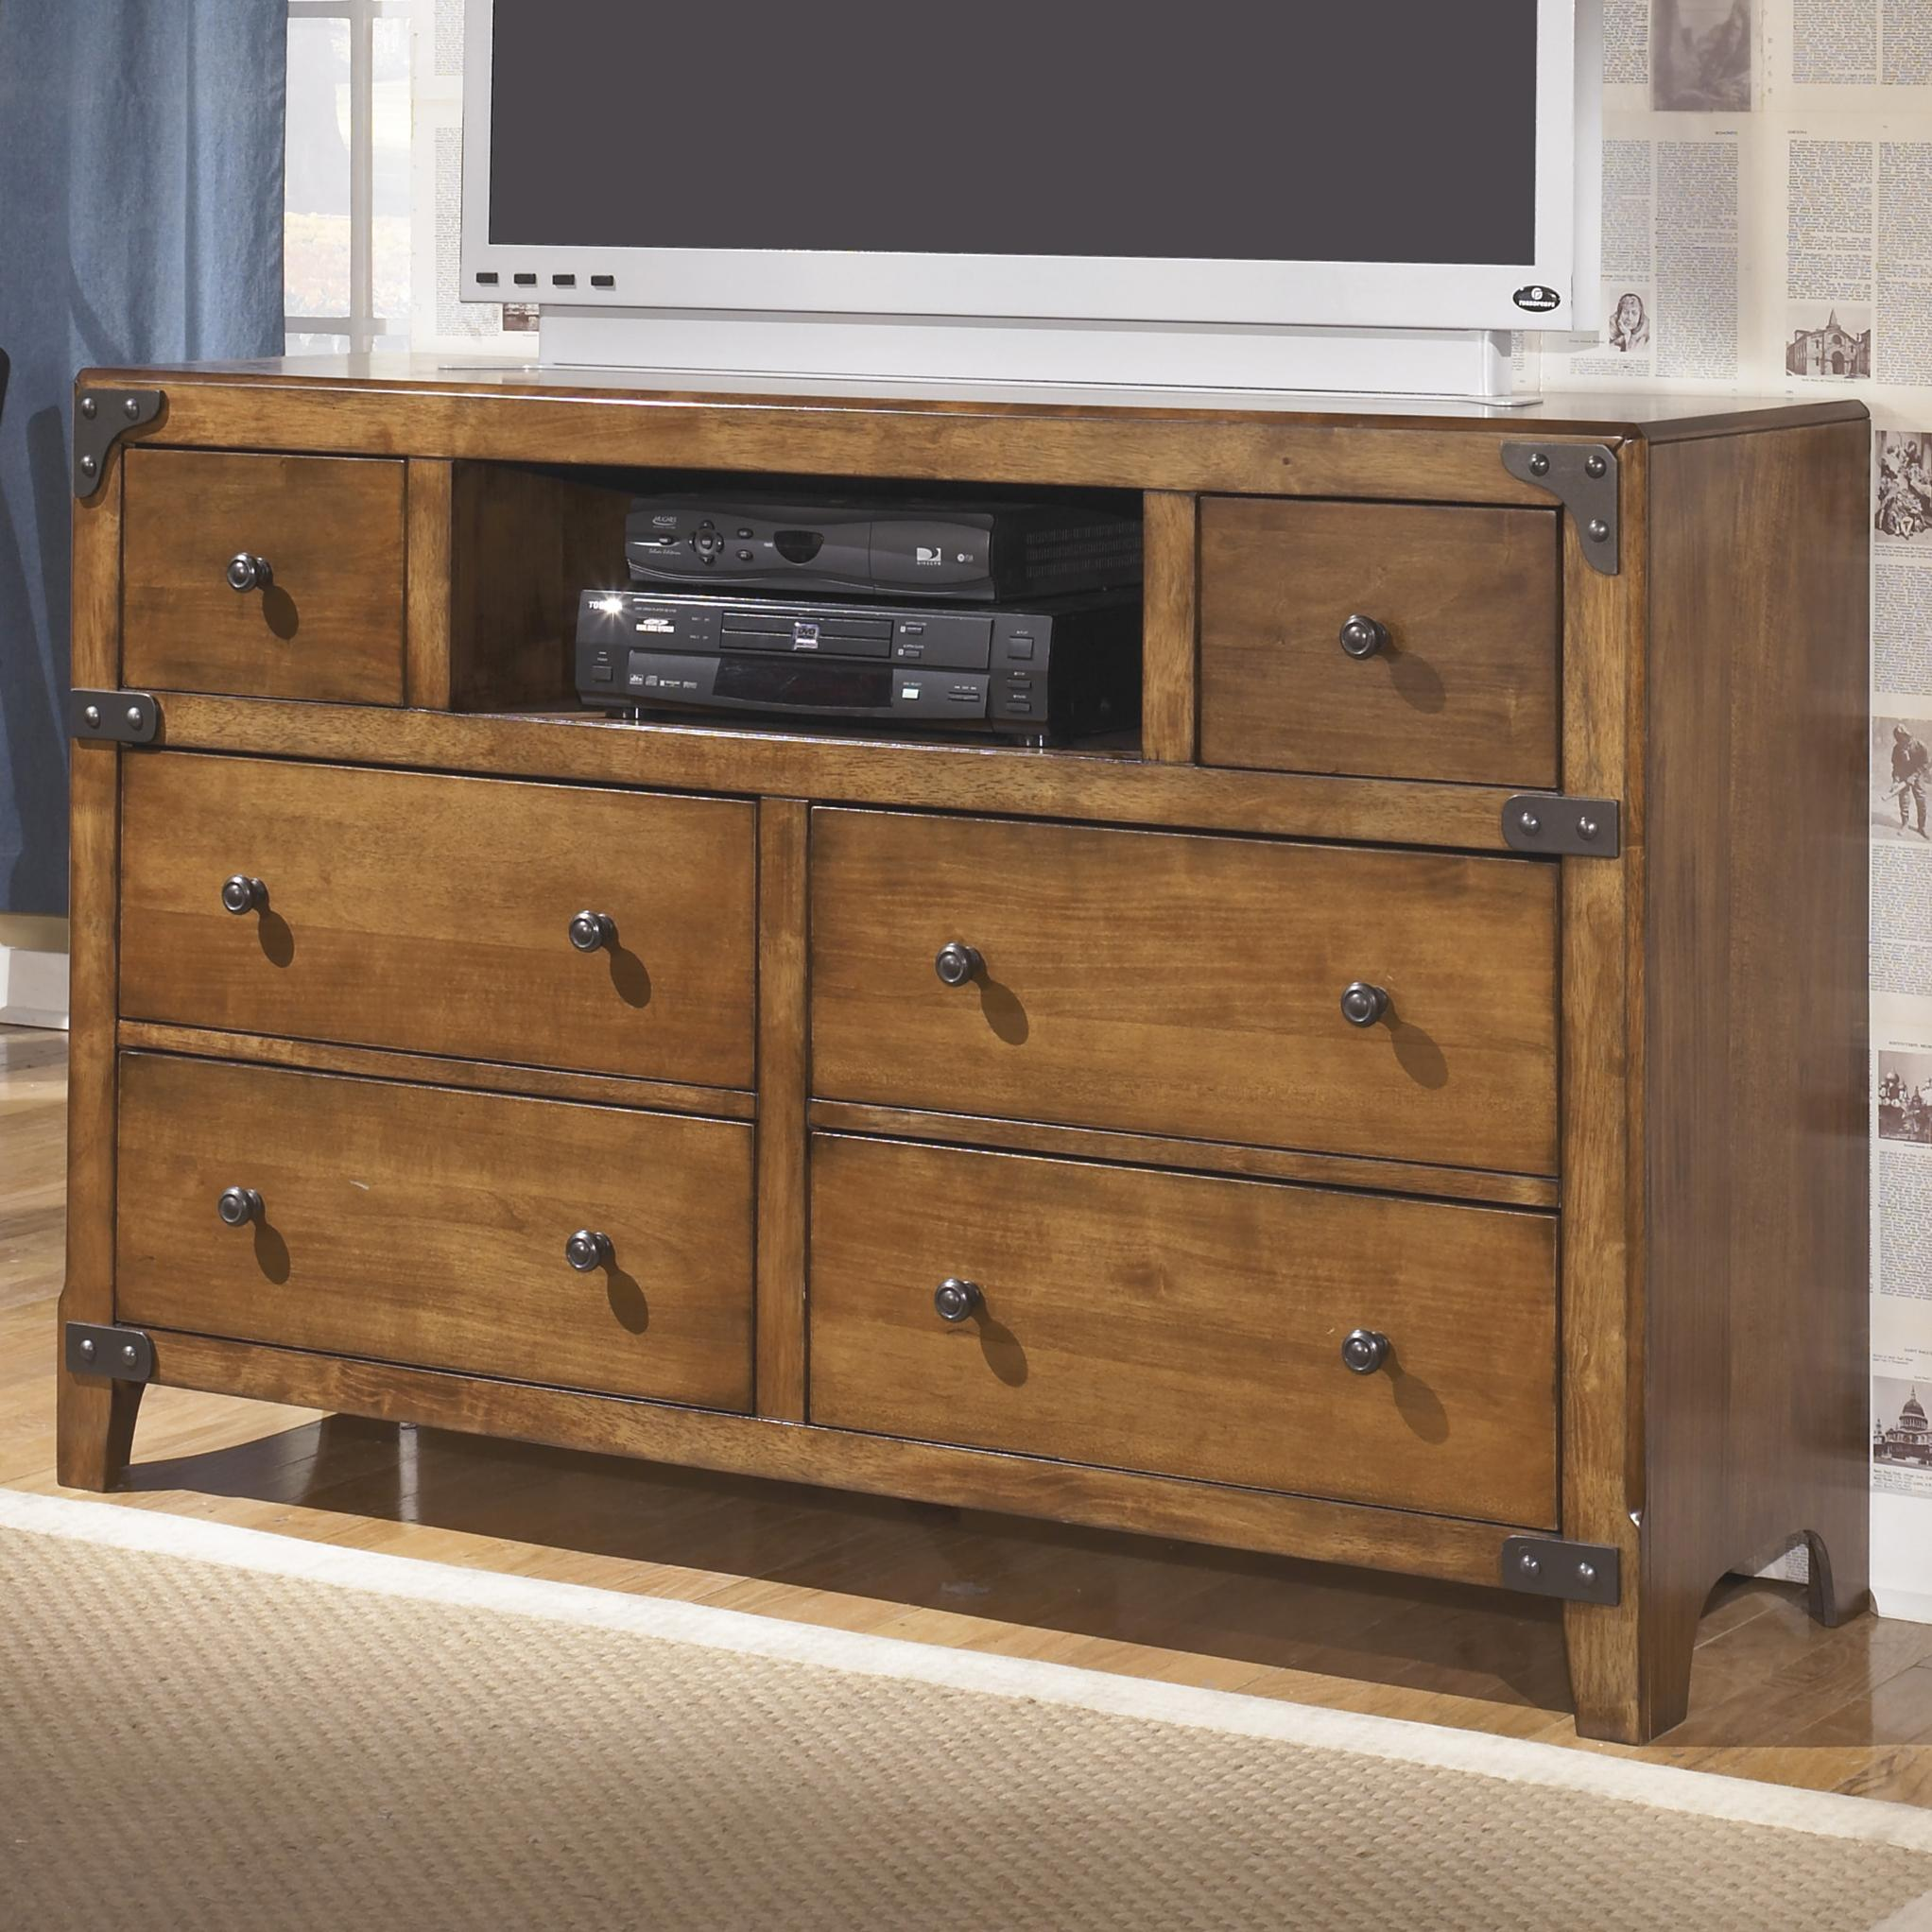 Signature Design by Ashley Delburne Dresser - Item Number: B362-21